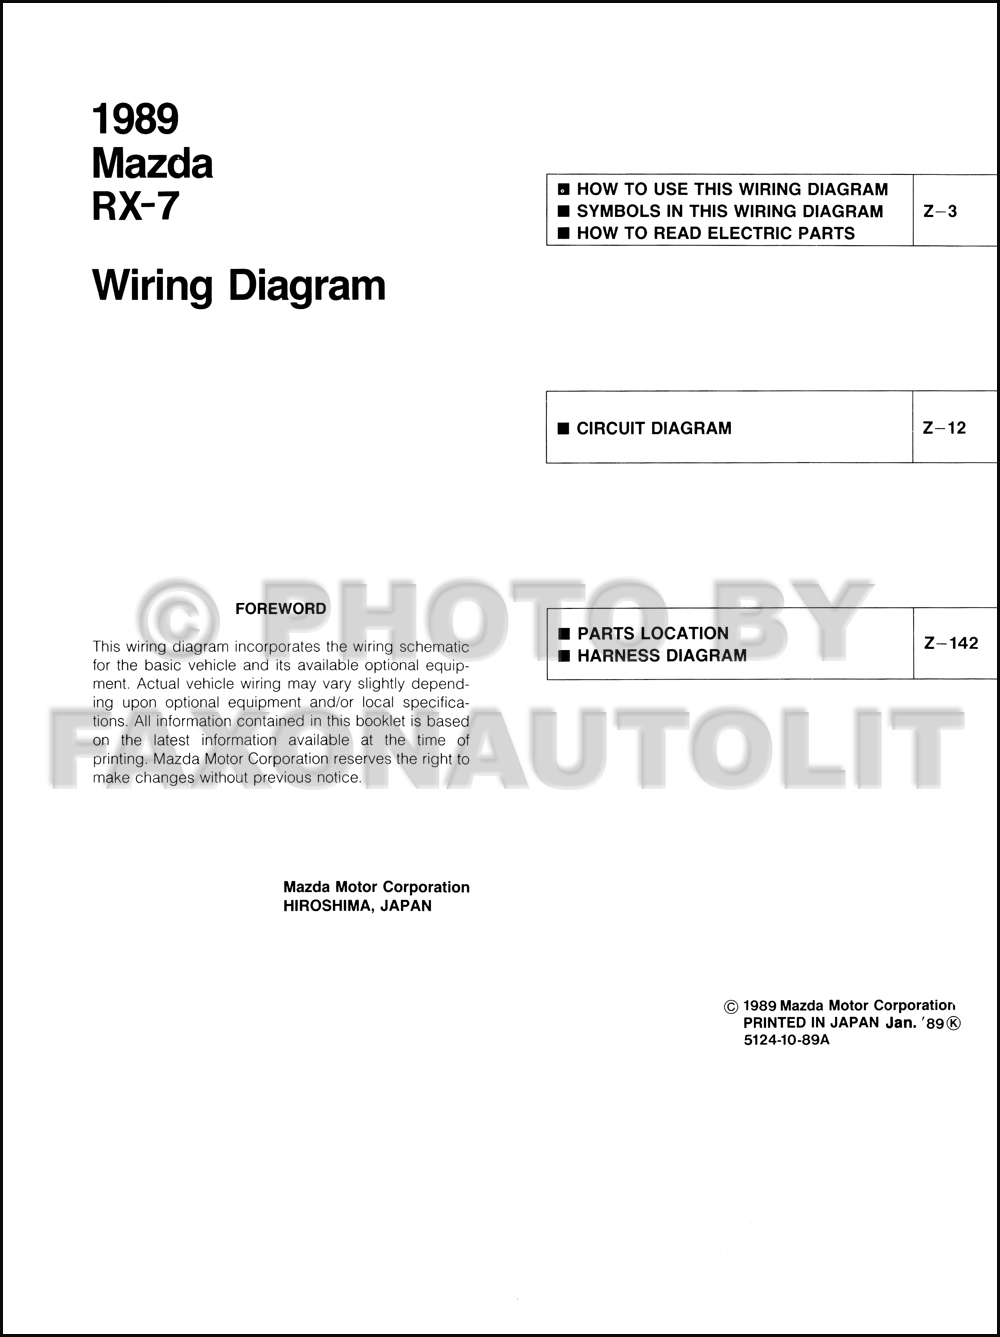 1989 Mazda Rx 7 Wiring Diagram Manual Original Rx7 Diagrams Click On Thumbnail To Zoom